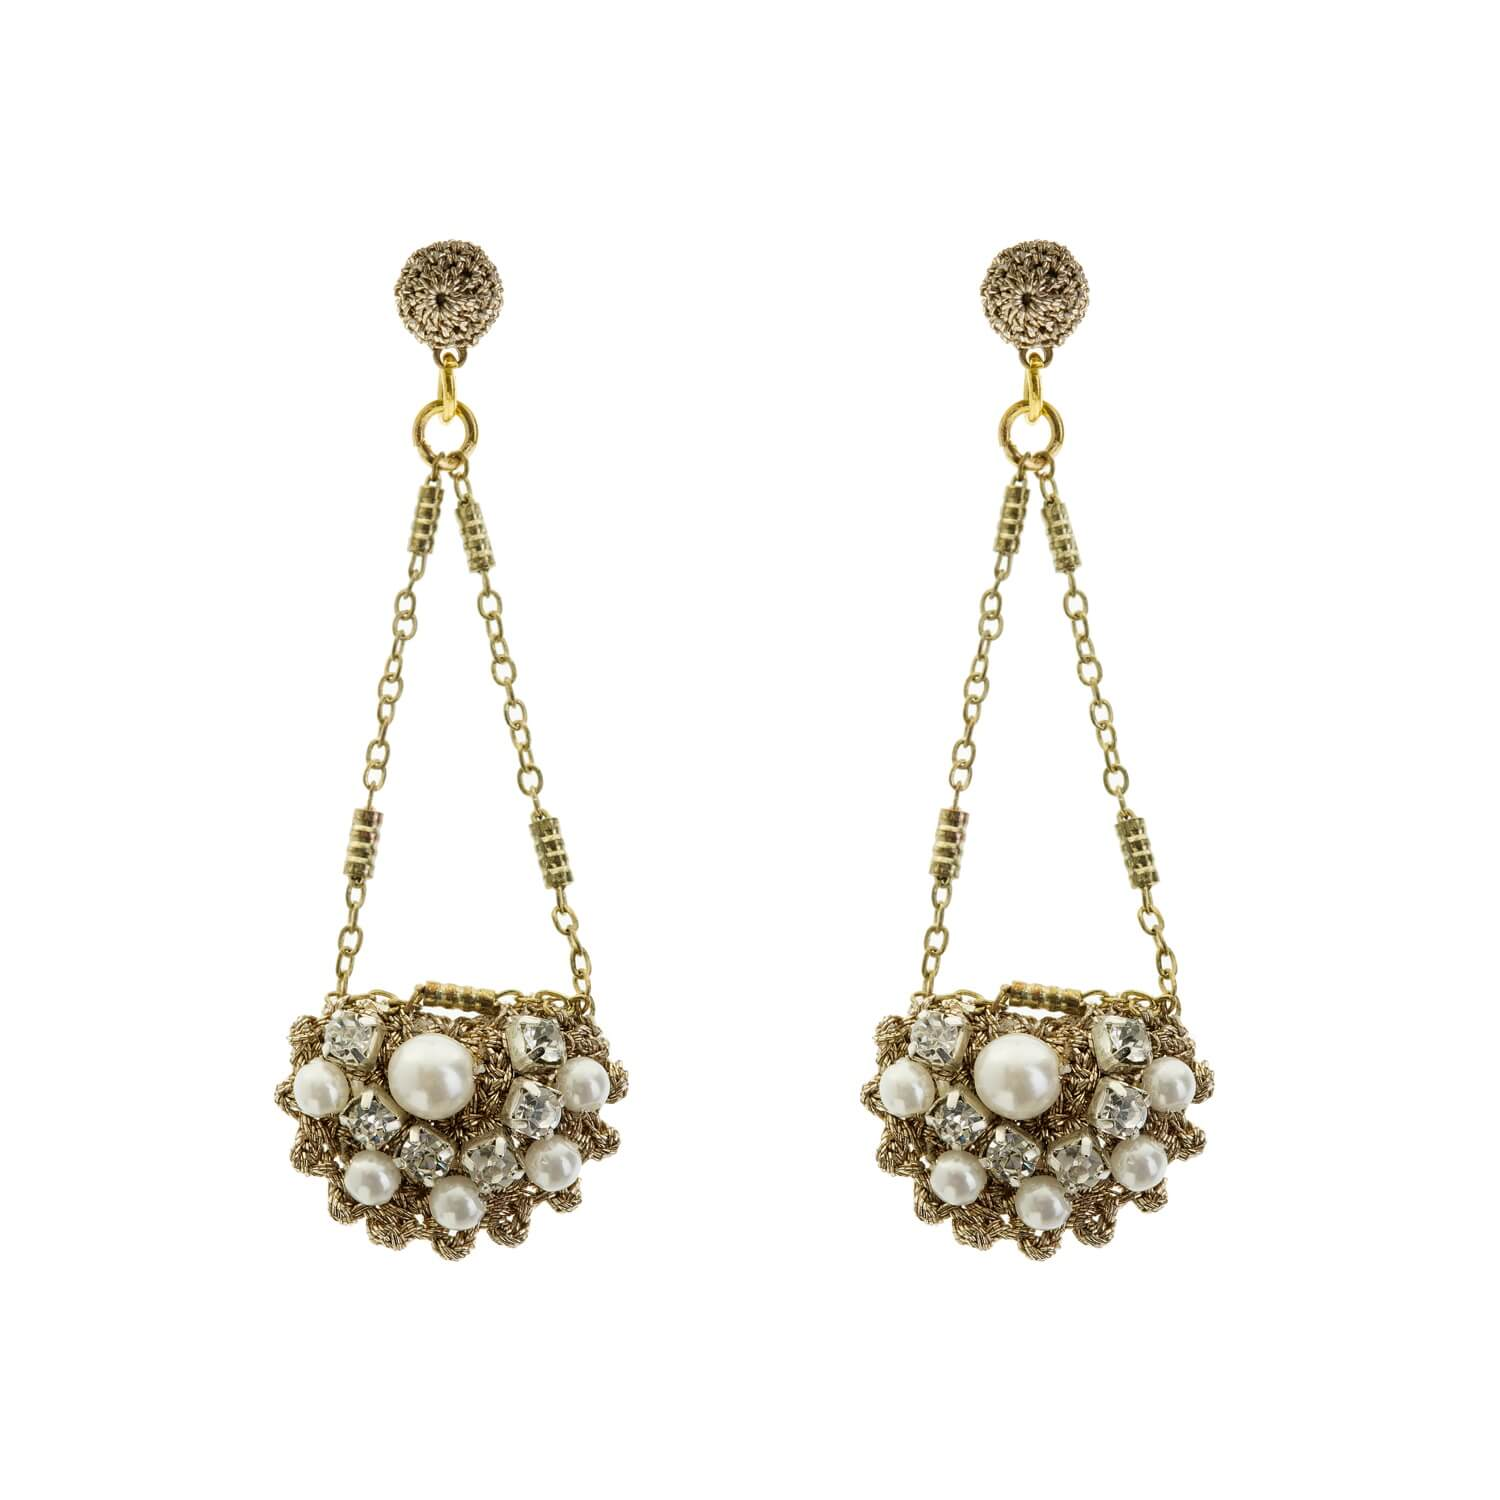 co earrings floral cluster salvatore